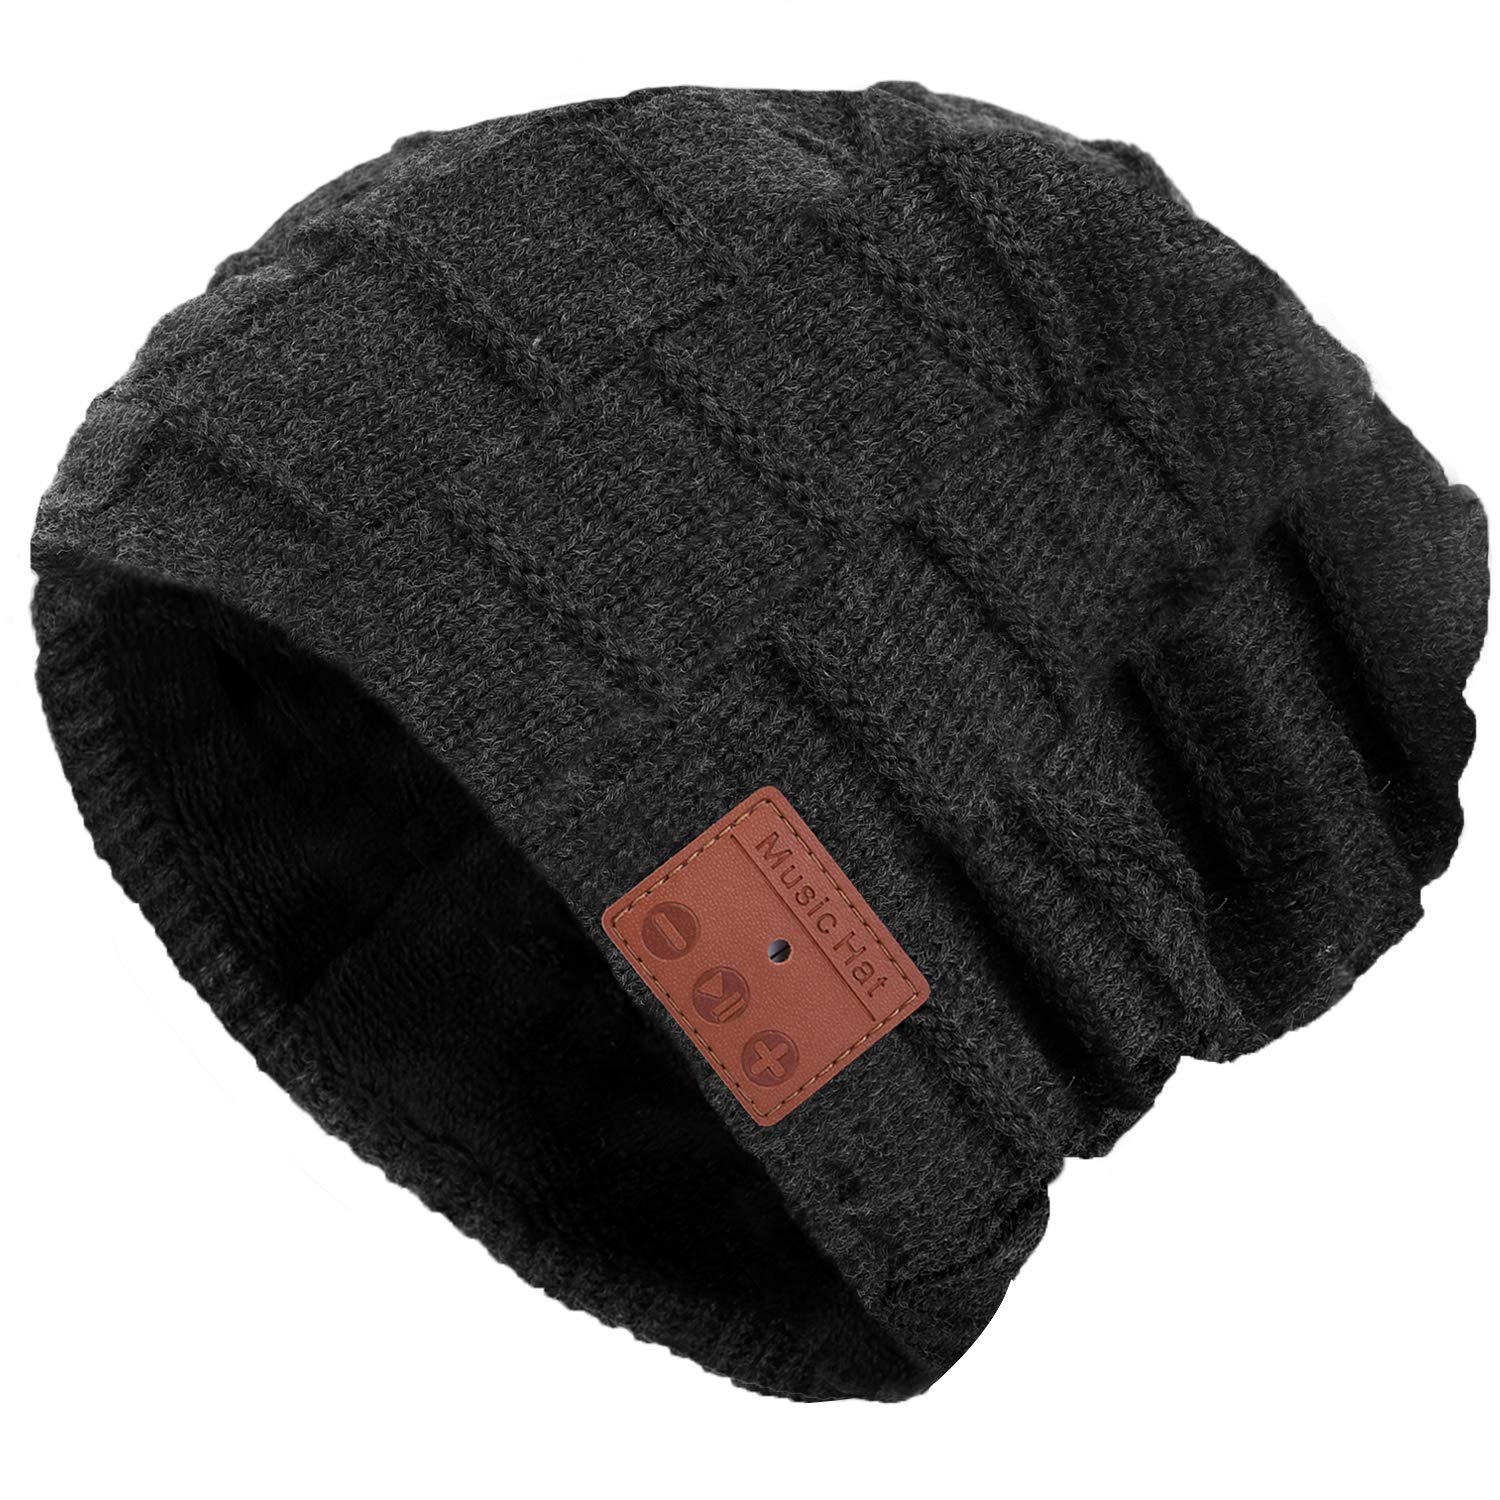 G.D.SMITH Bluetooth Beanie Hat Hand Free Wireless Music Hat Knit Cap with Speakerphone Stereo Headphone for Outdoor Sport Unique Christmas Tech Gifts for Women Men Boys and Girls Gray